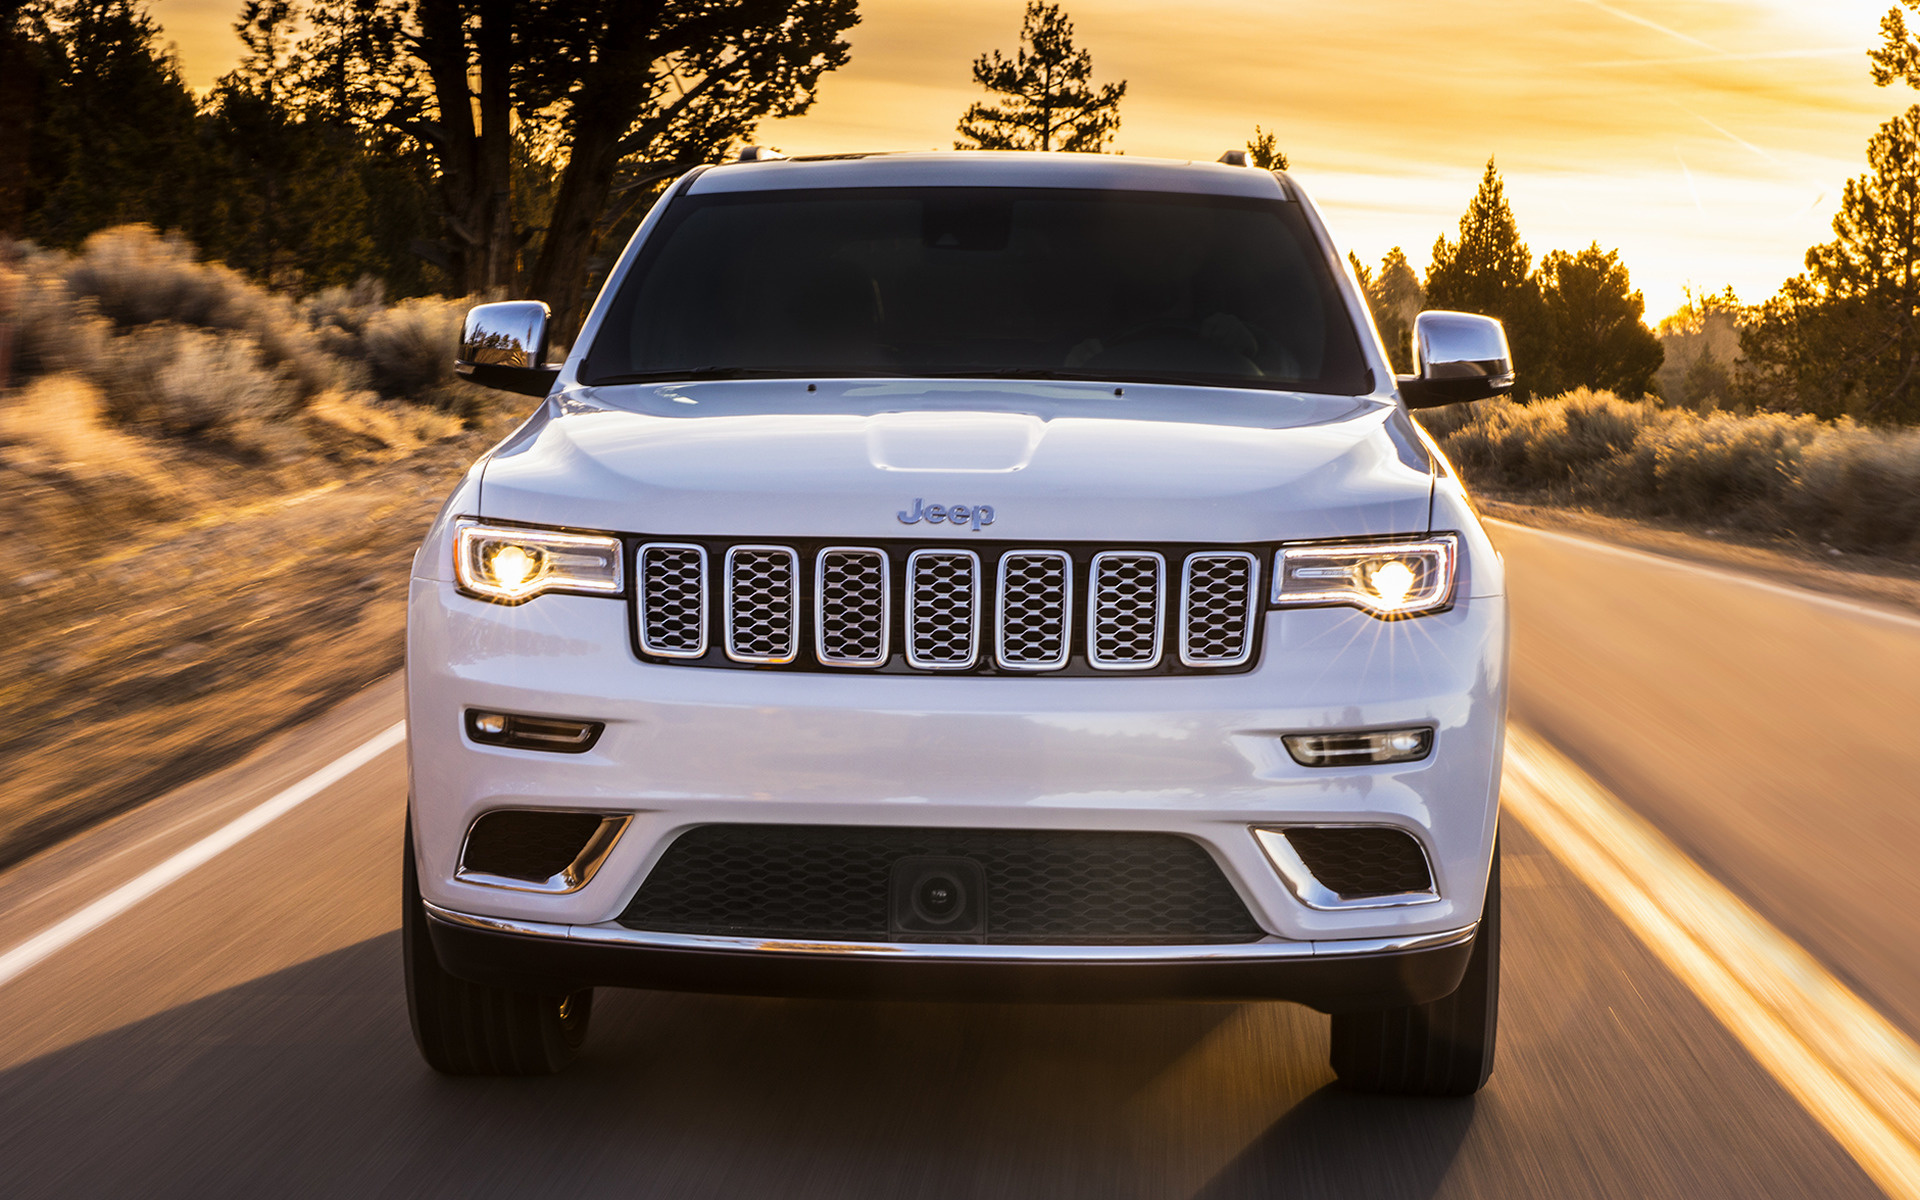 jeep cherokee front view wallpaper 65163